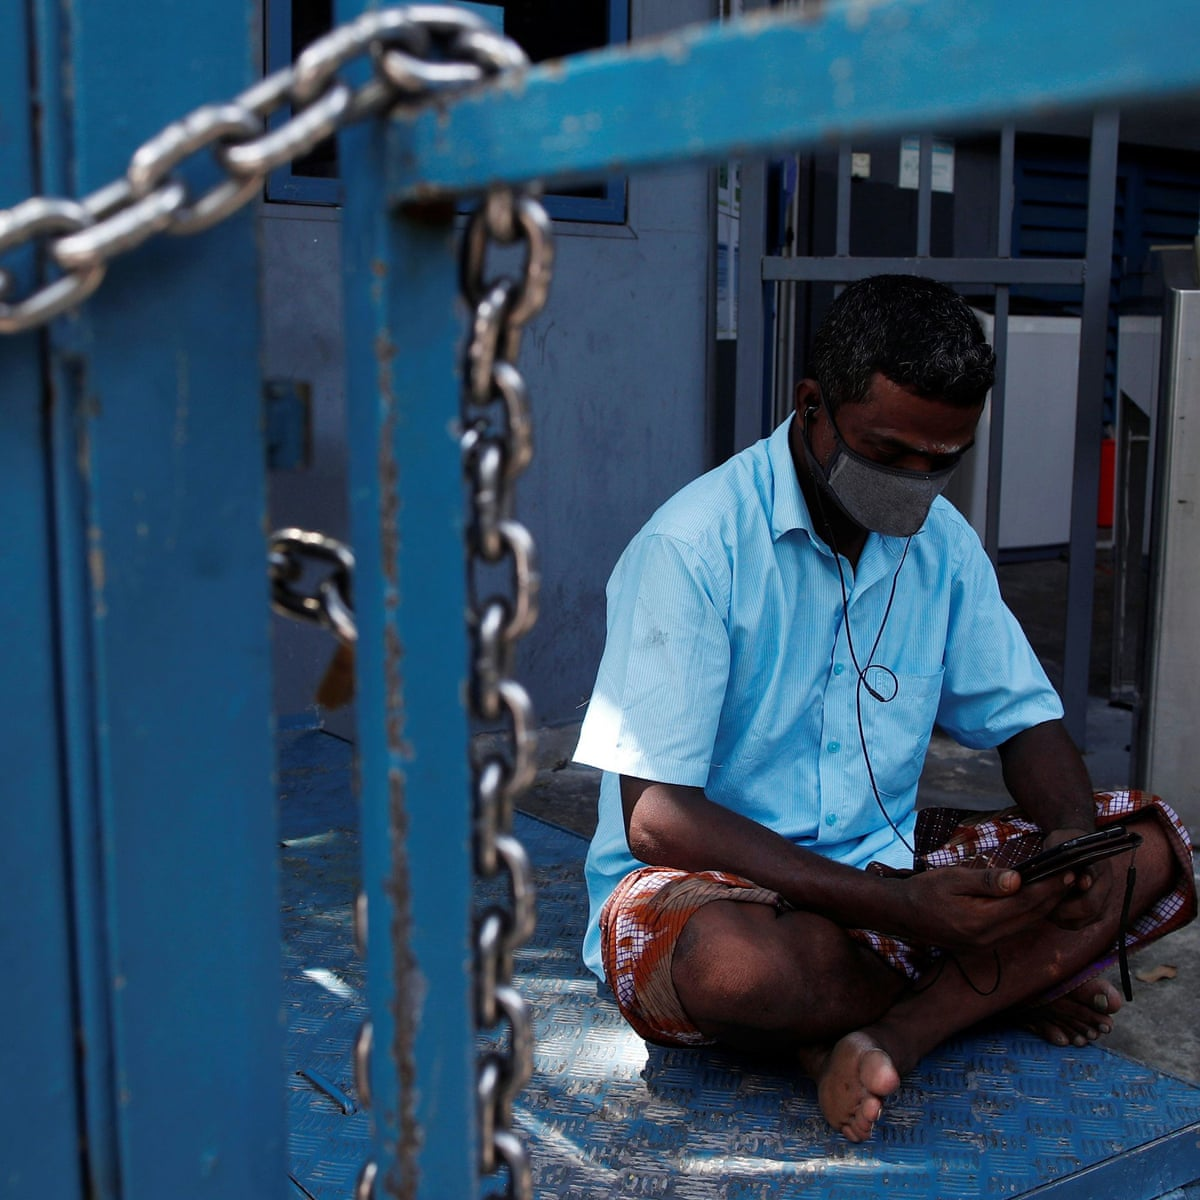 We Re In A Prison Singapore S Migrant Workers Suffer As Covid 19